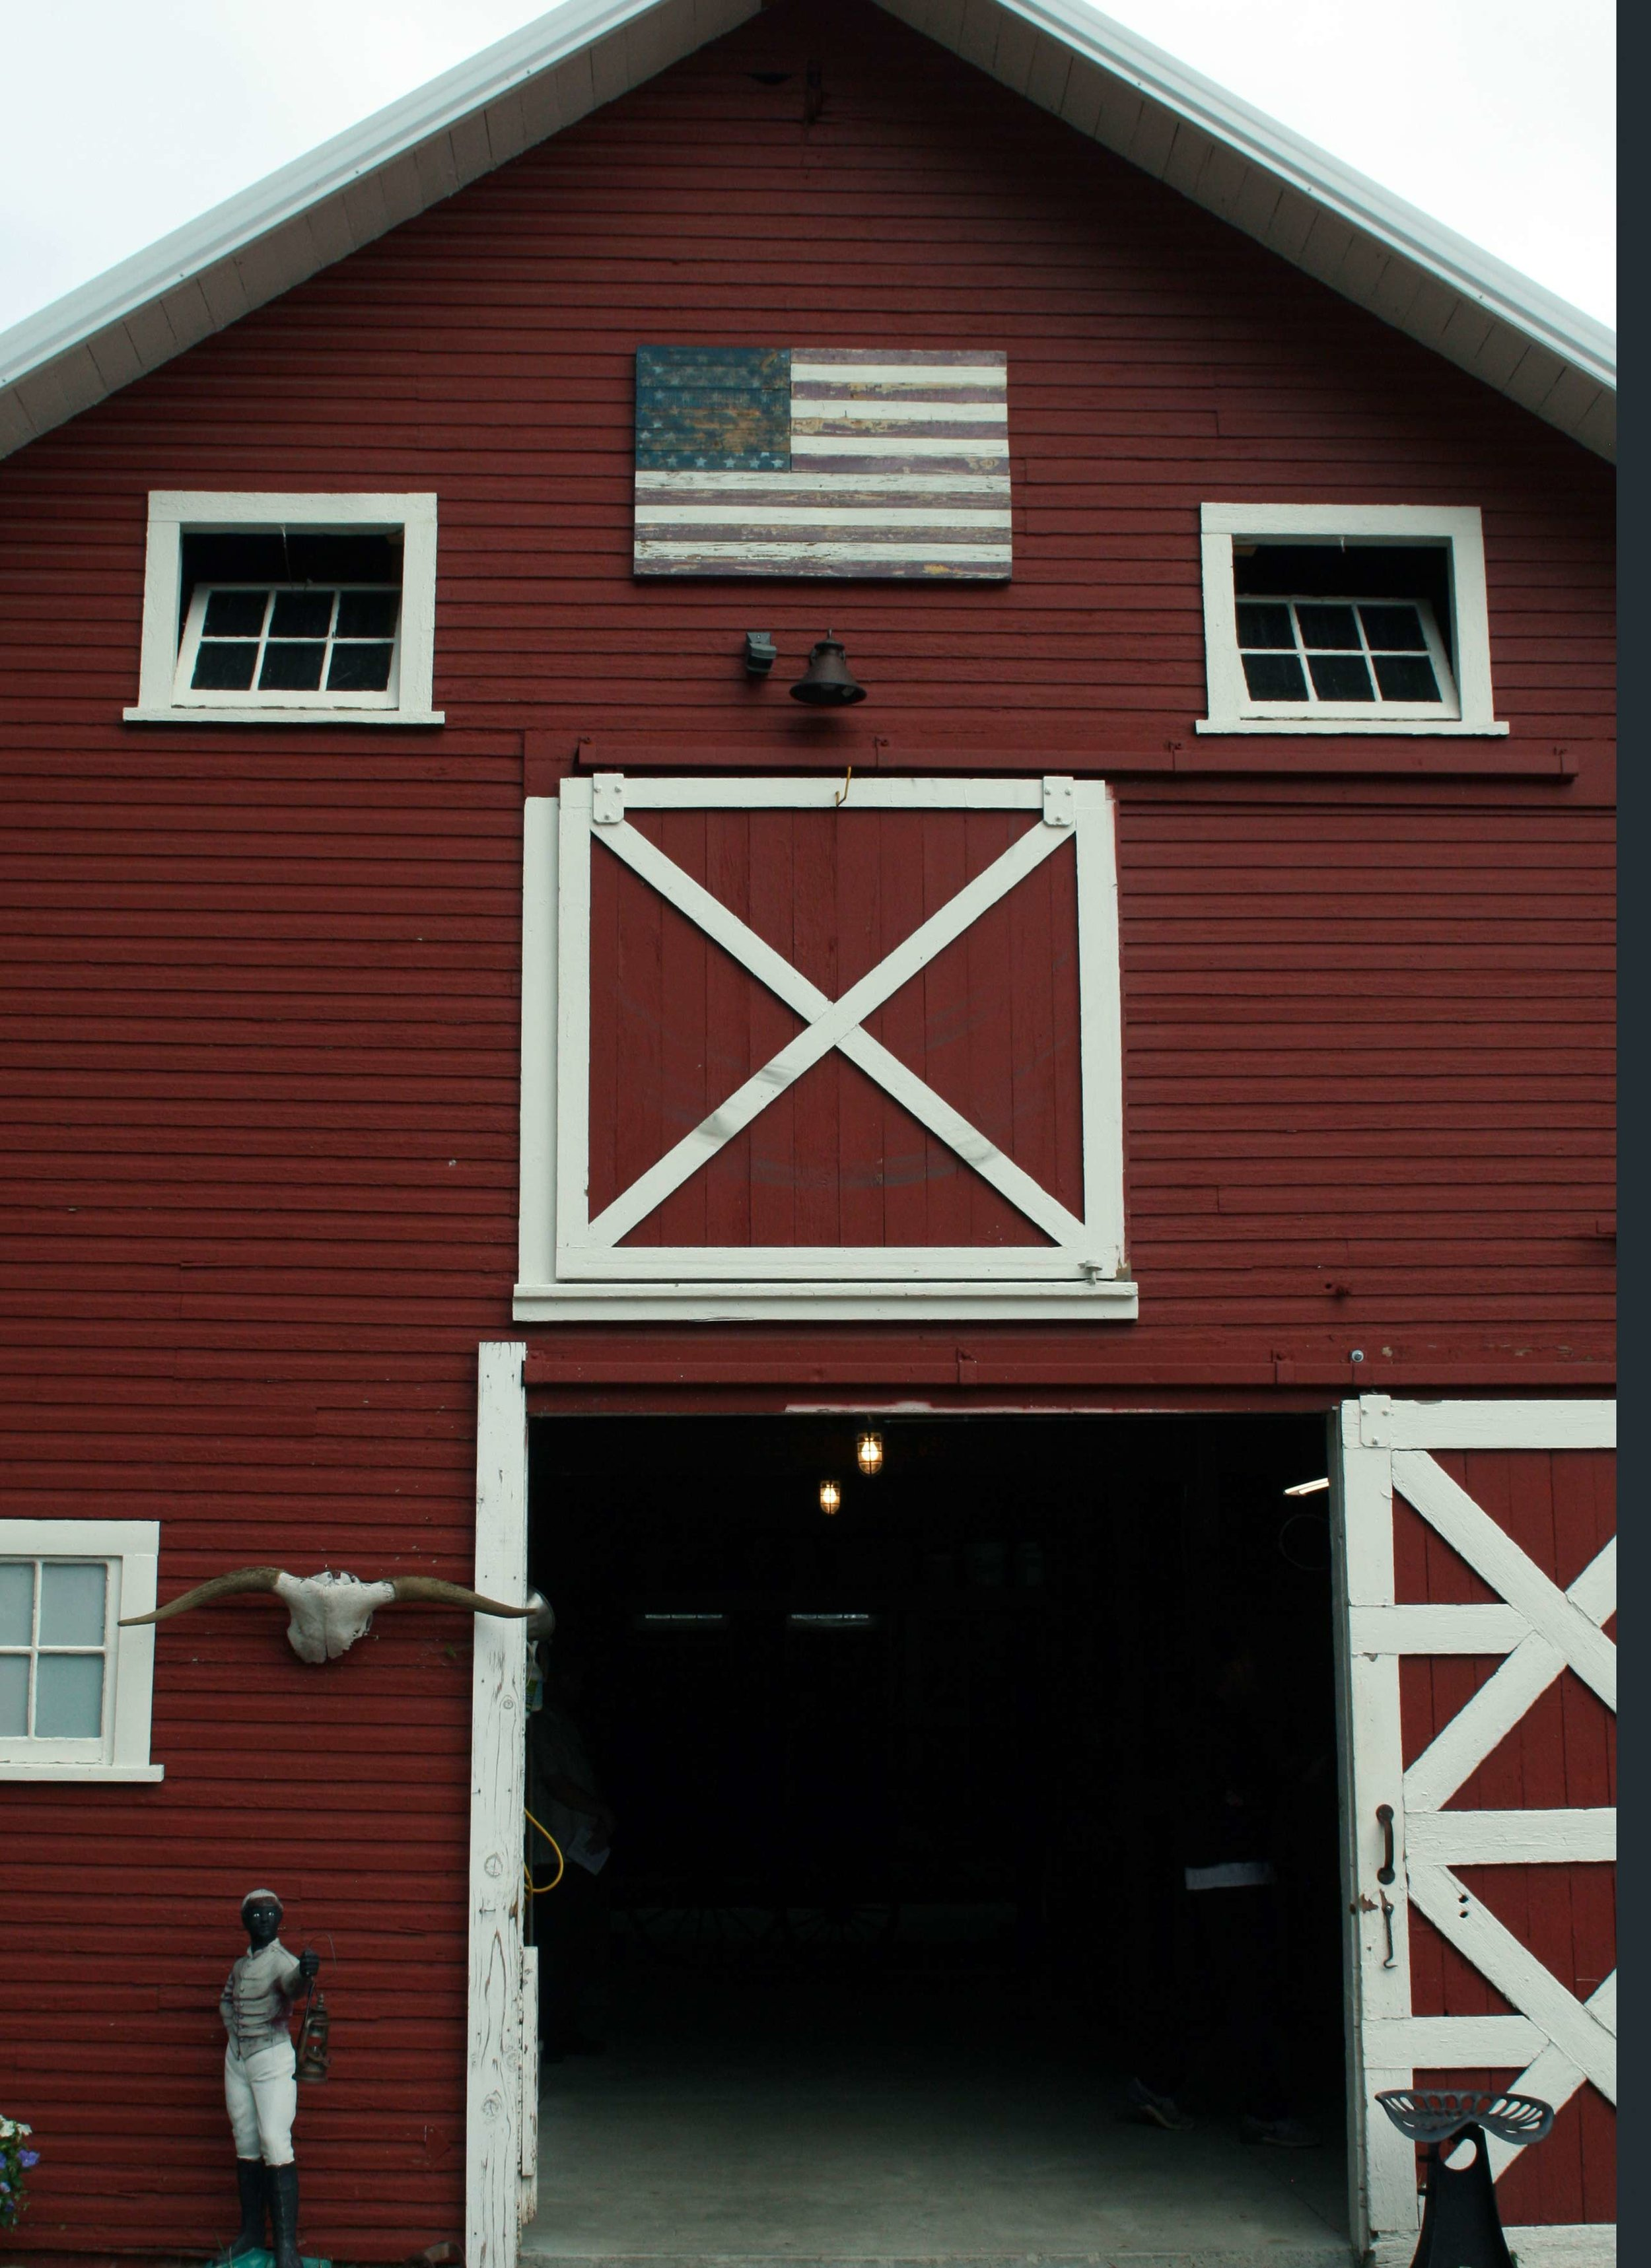 The 1911 barn at the featured farm property on Overland Trail